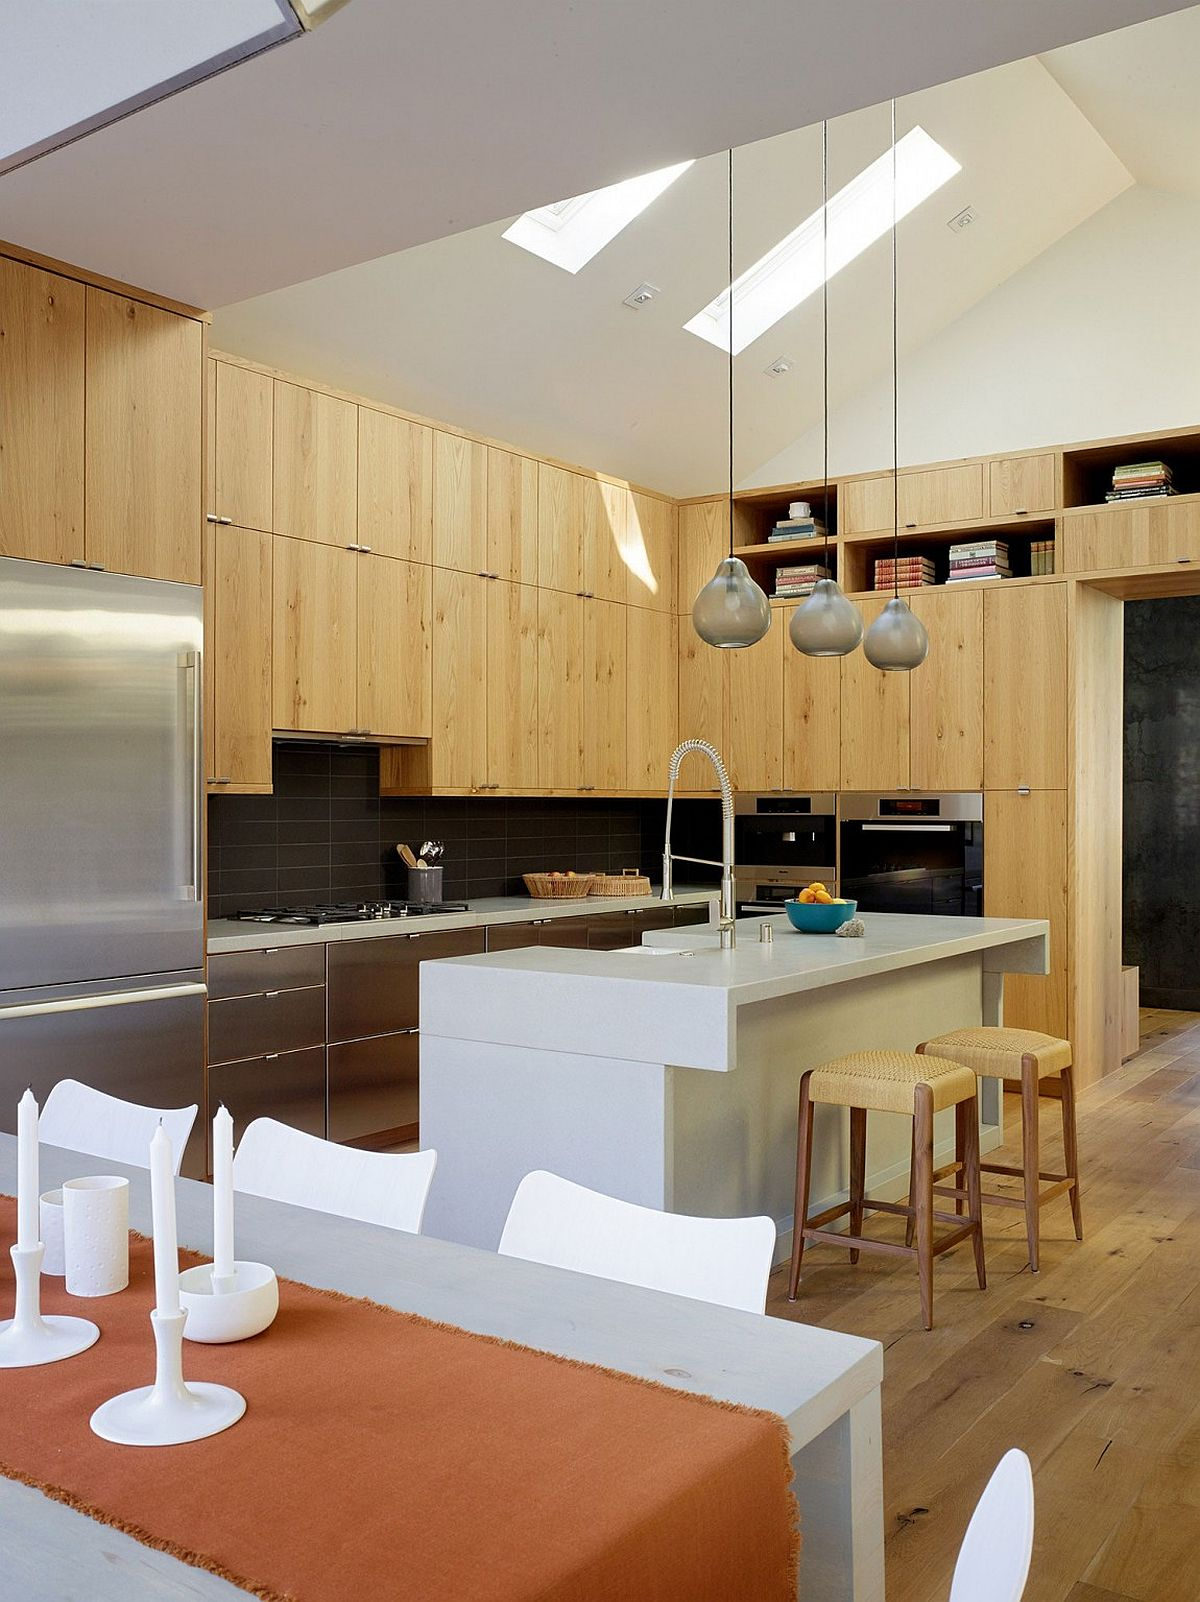 Traditional kitchen with smart pendant lights